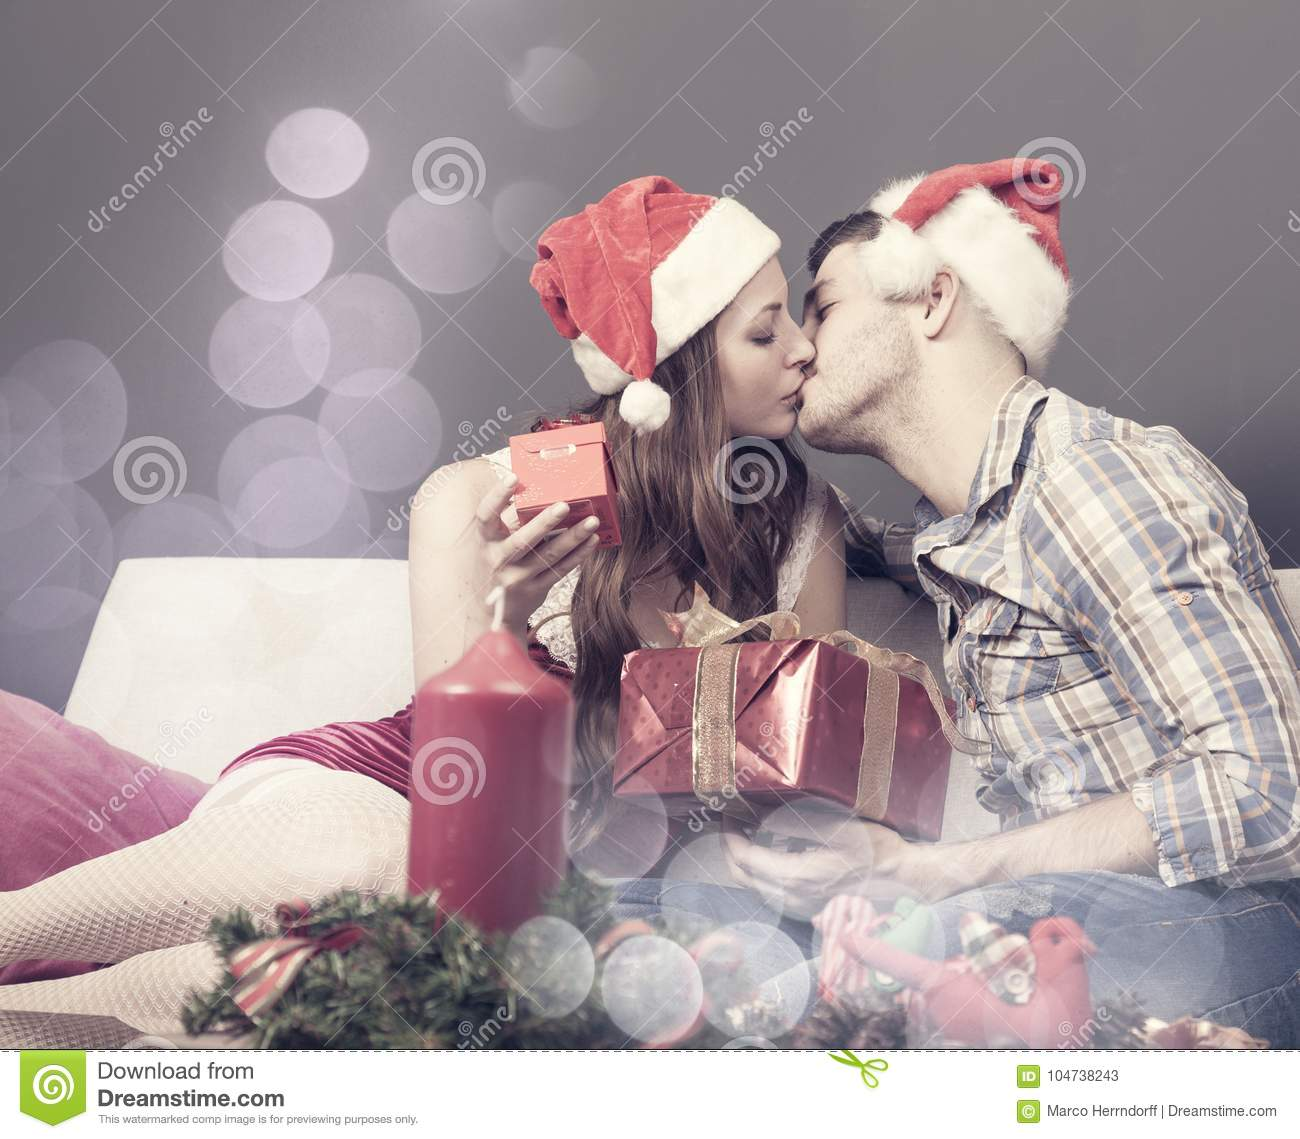 Lovely Couple Enjoys Christmas At Home Stock Image - Image of each ...